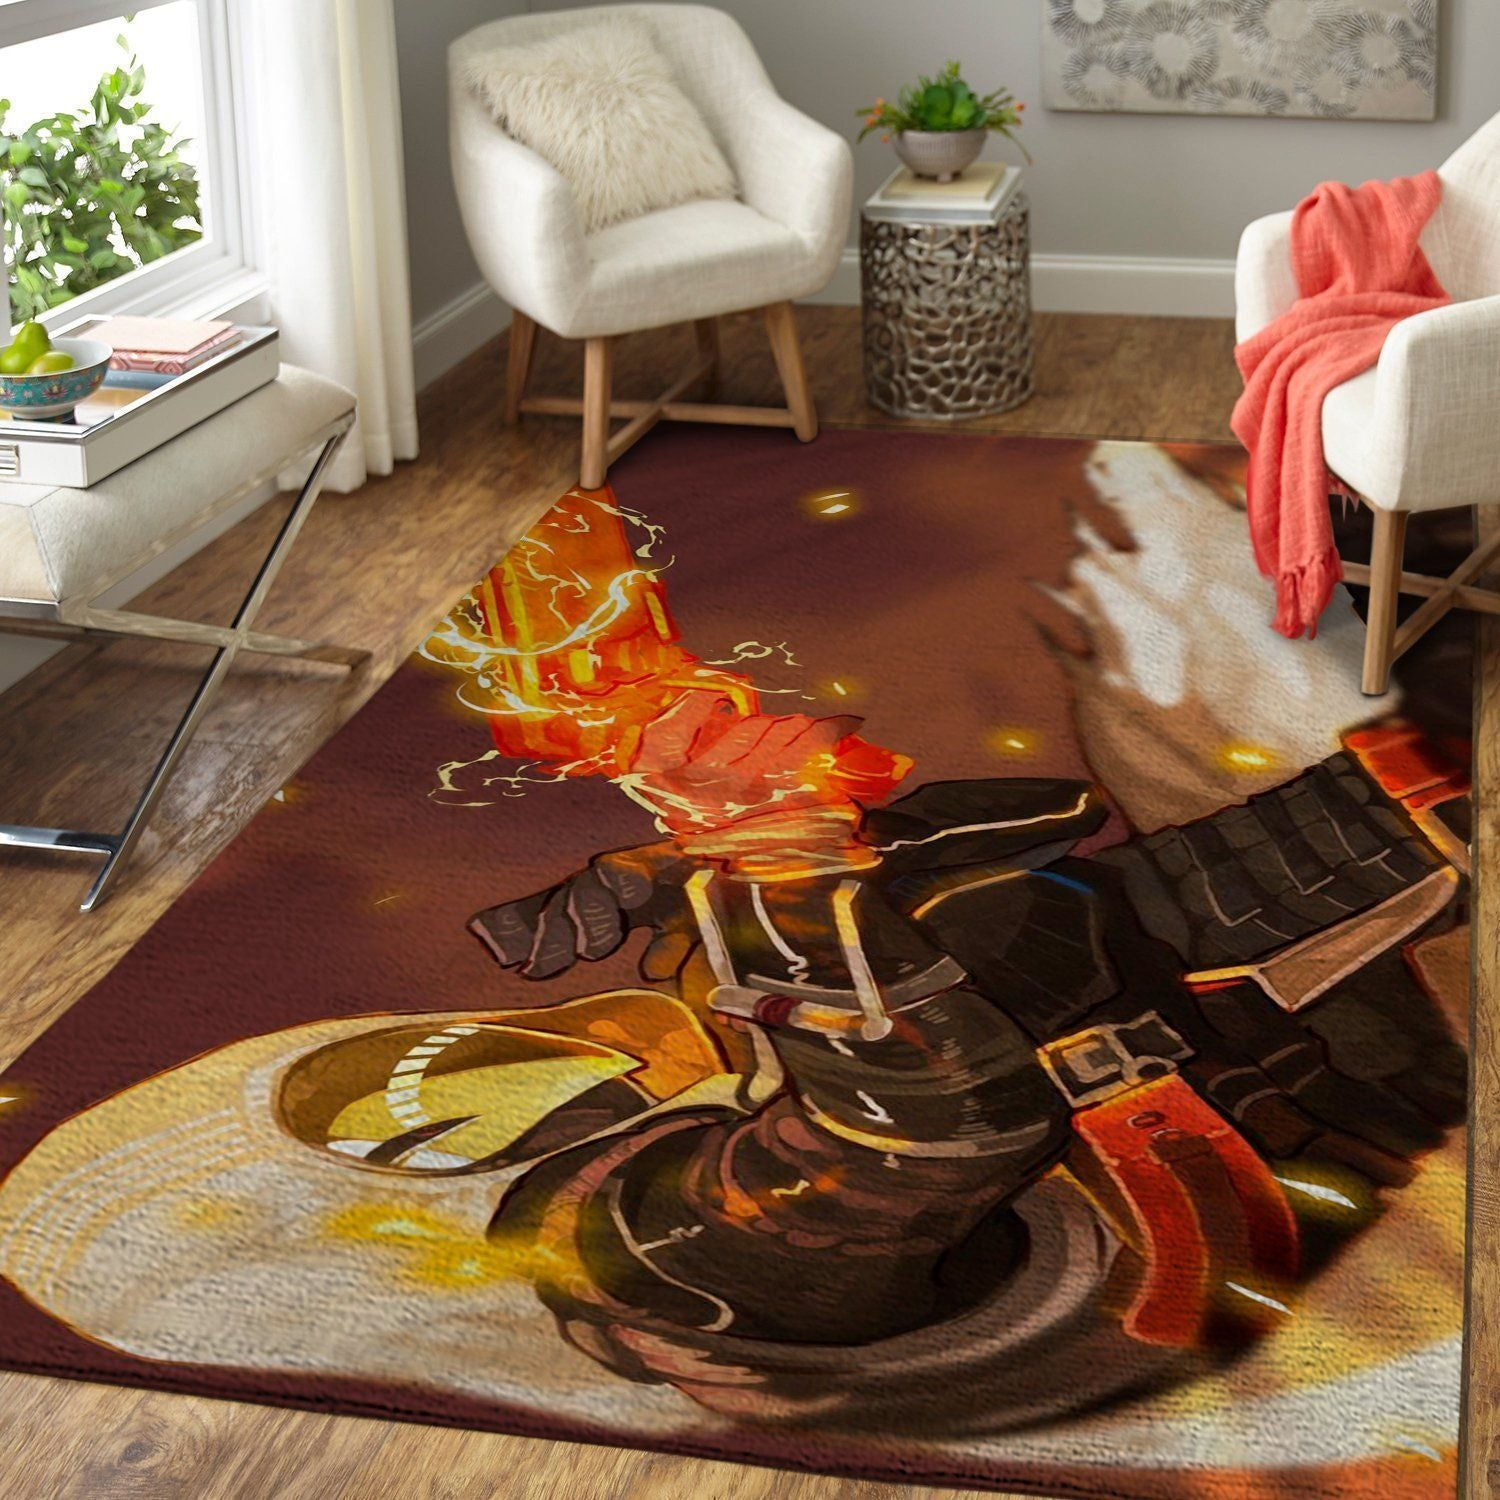 Destiny Hunter Gunslinger Area Rug / Gaming Carpet, Gamer Living Room Rugs, Floor Decor D30109